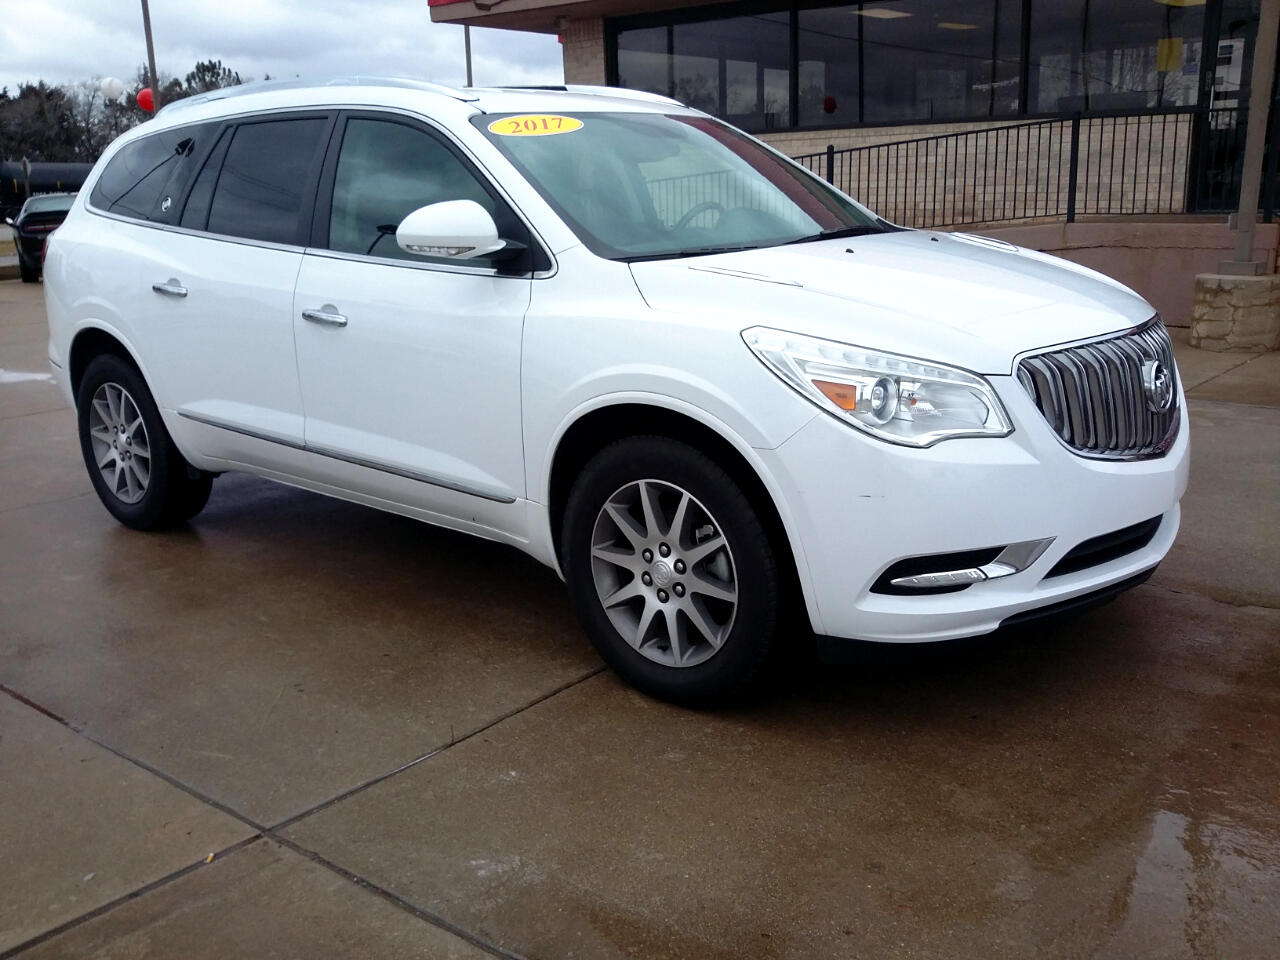 Buick Enclave Leather FWD 2017